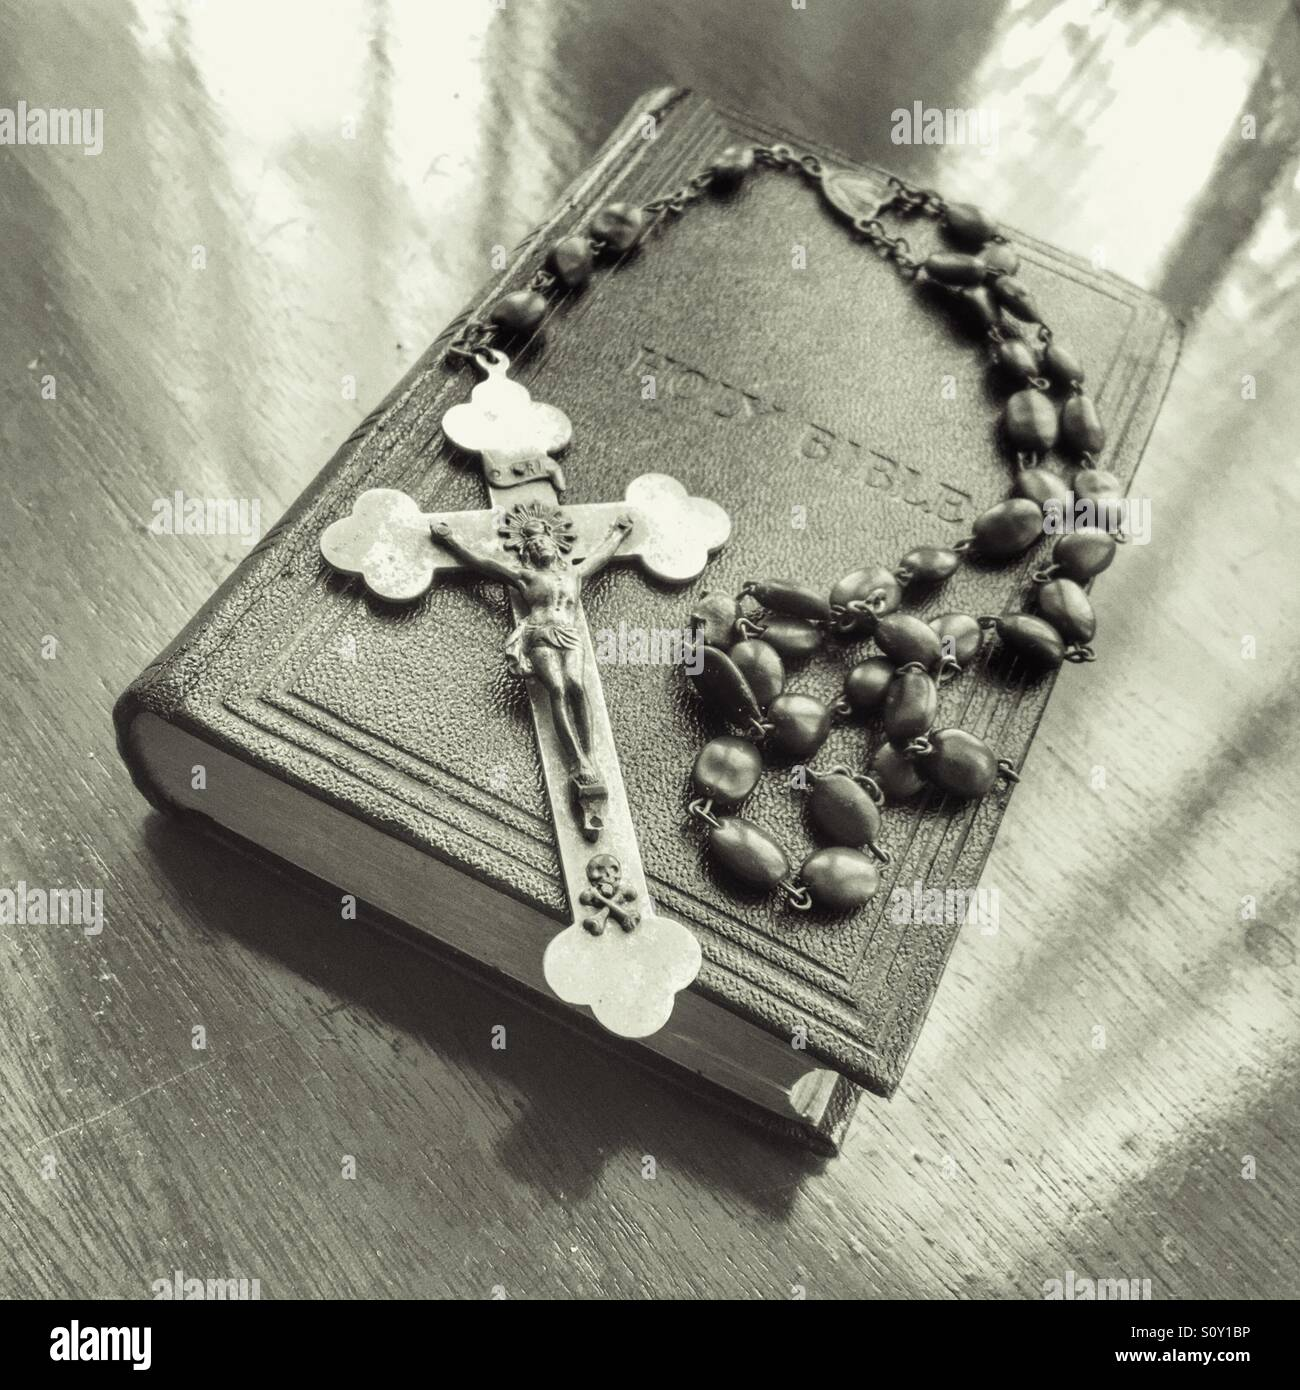 Rosary beads and crucifix resting on holy bible. - Stock Image